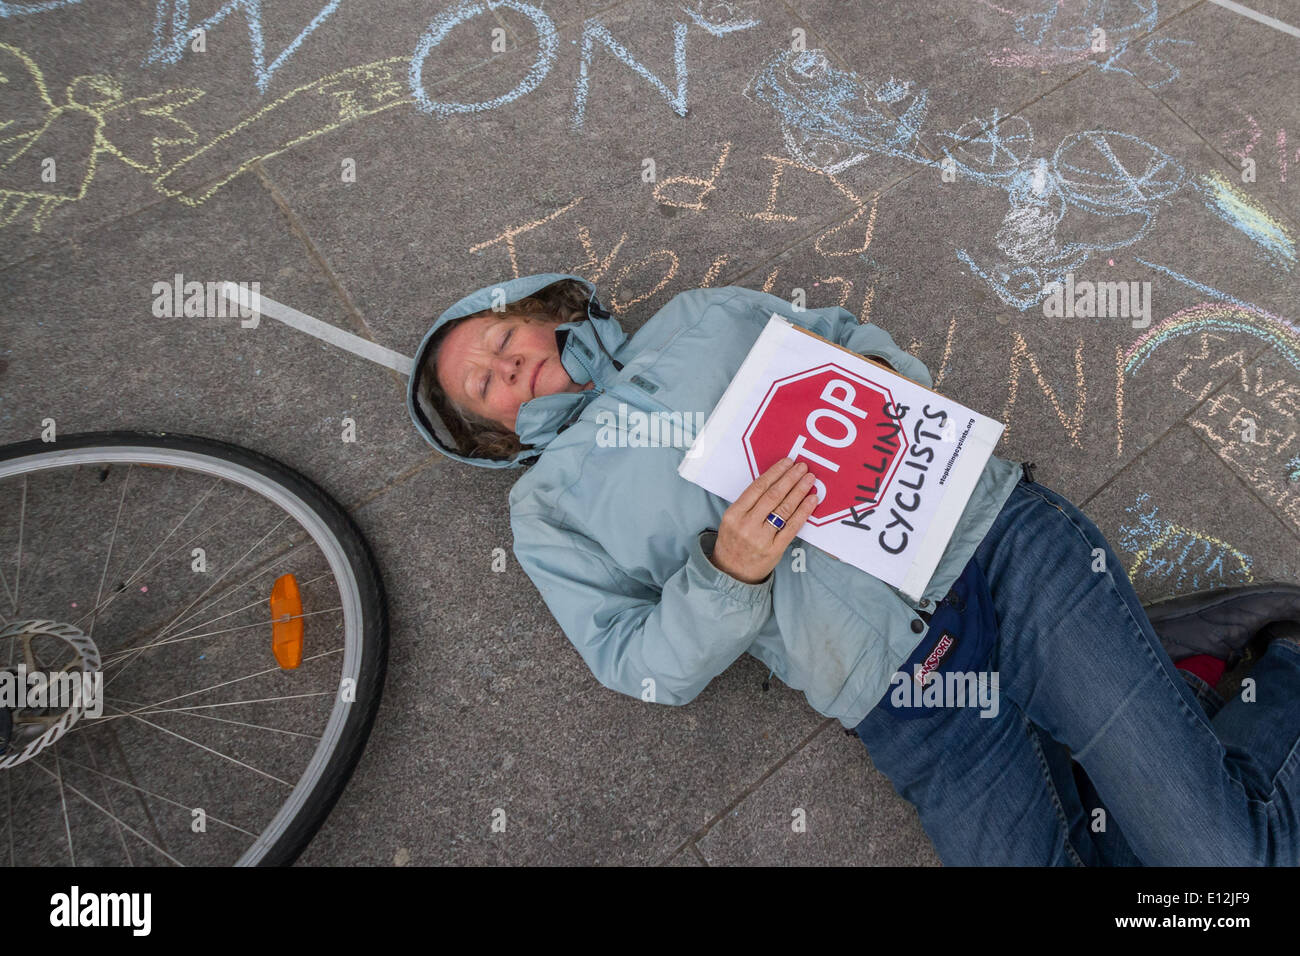 London, UK. 21st May, 2014. Jenny Jones of the Green Party joins the London cycling protest 'die-in'. Credit:  Guy Corbishley/Alamy Live News - Stock Image